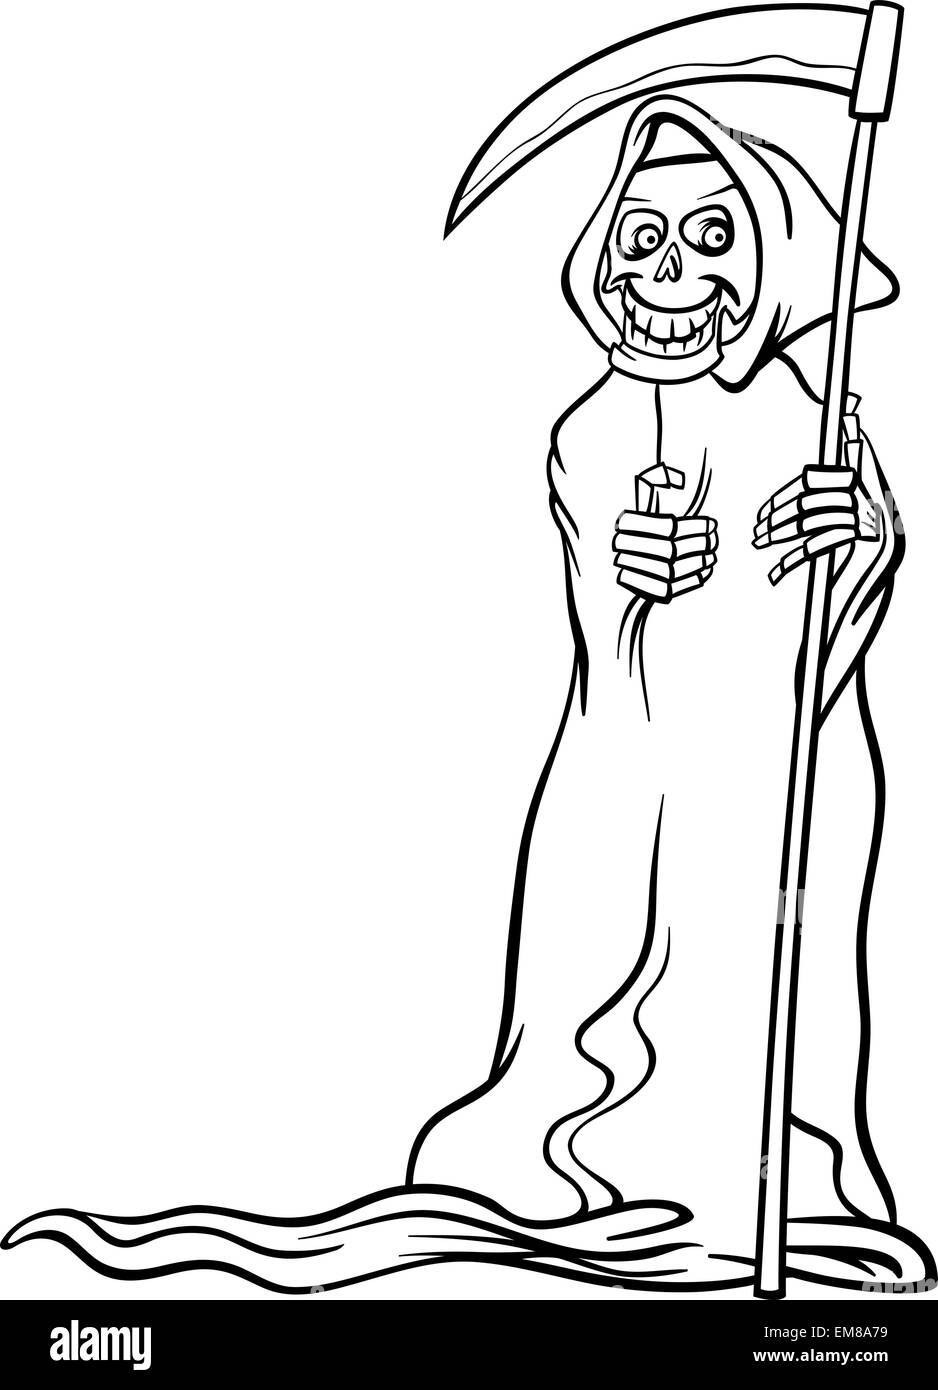 death skeleton cartoon for coloring book Stock Vector Art ...